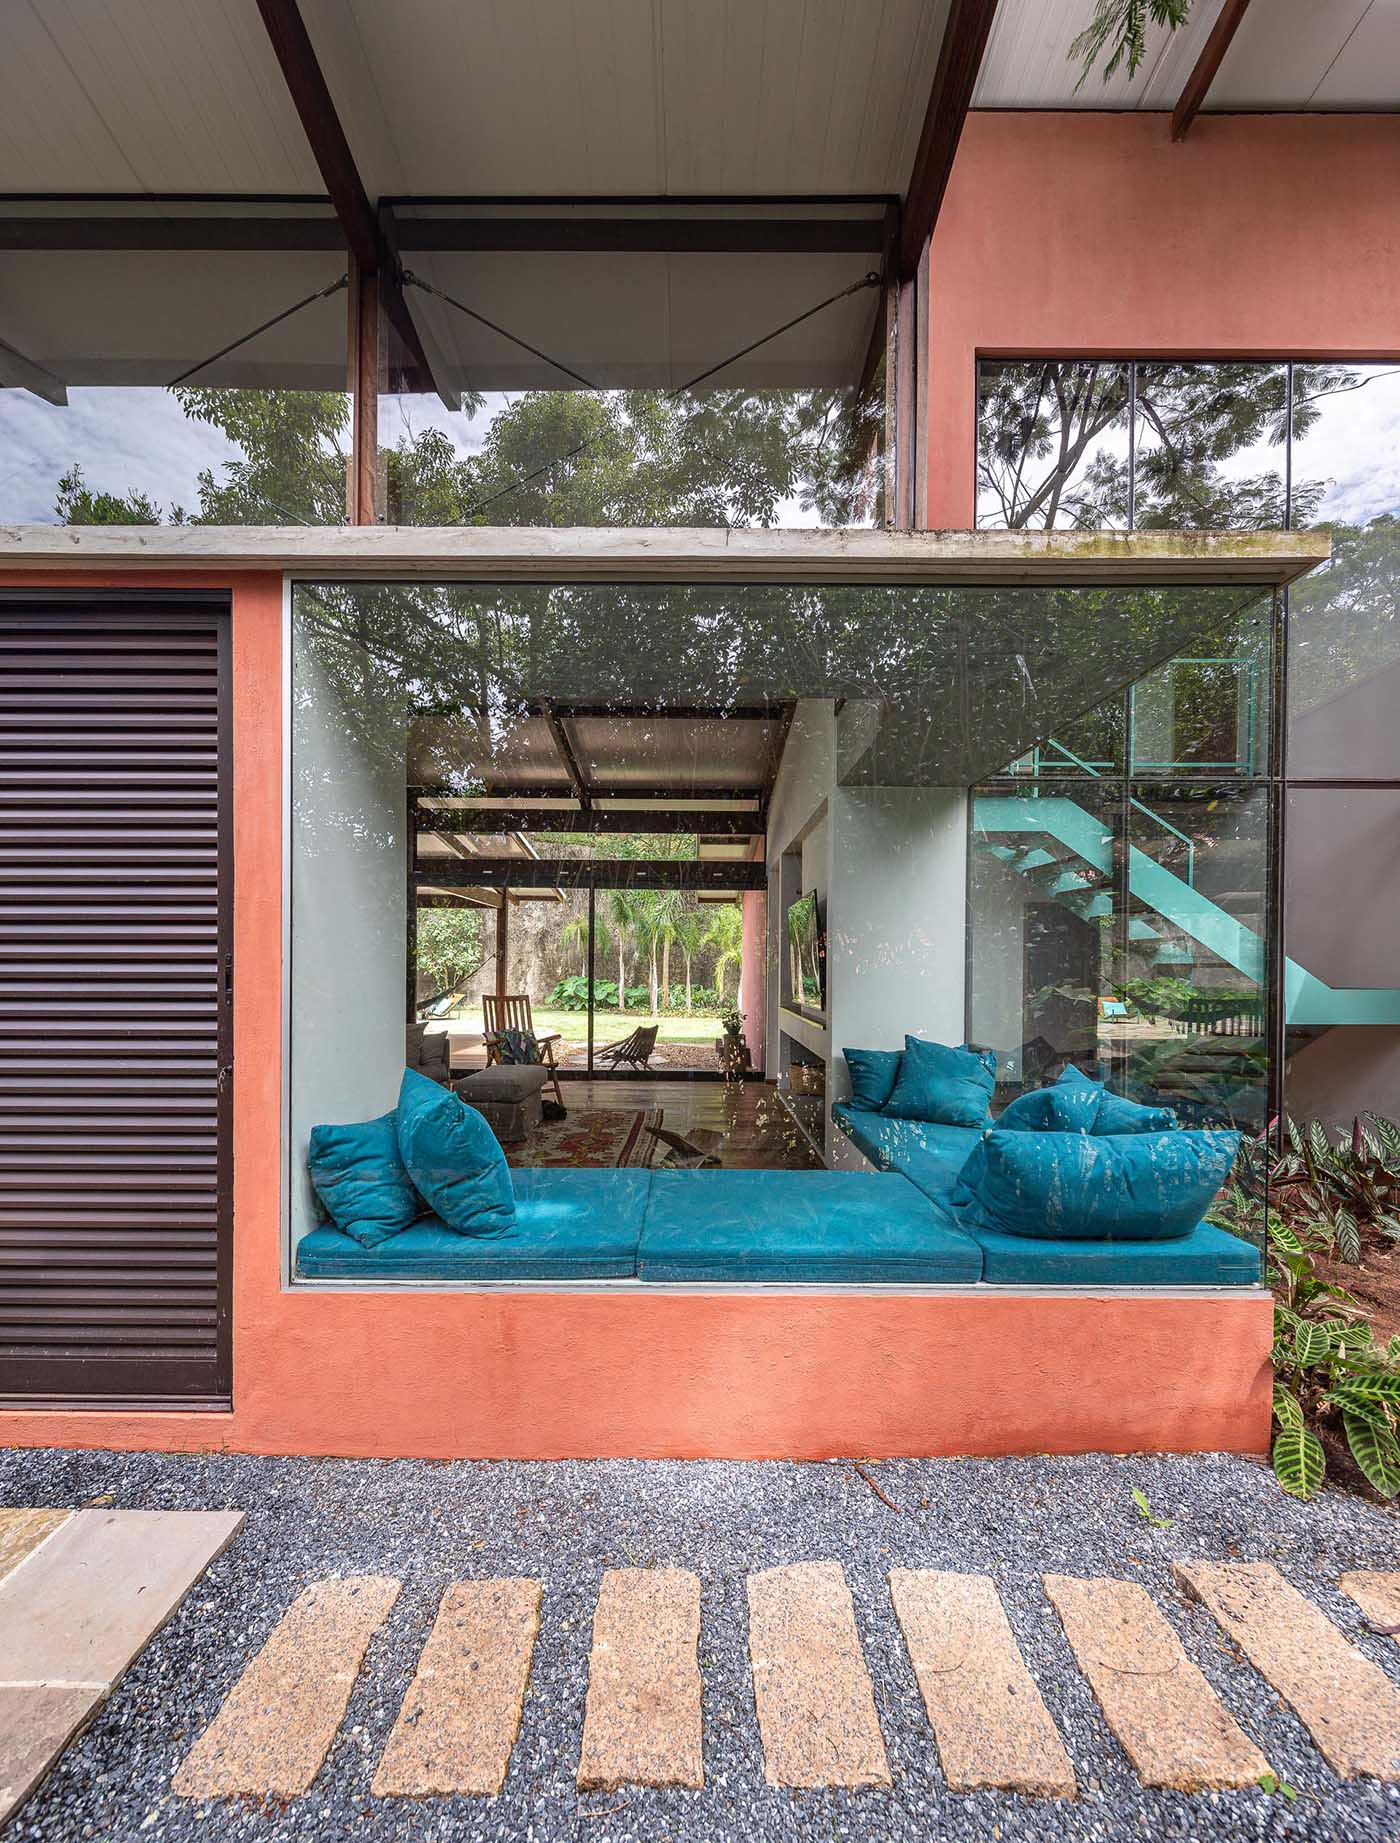 This modern window bench makes its home next to large windows and has has a height that matches the bottom of the glass, which can been seen from the exterior of the home.